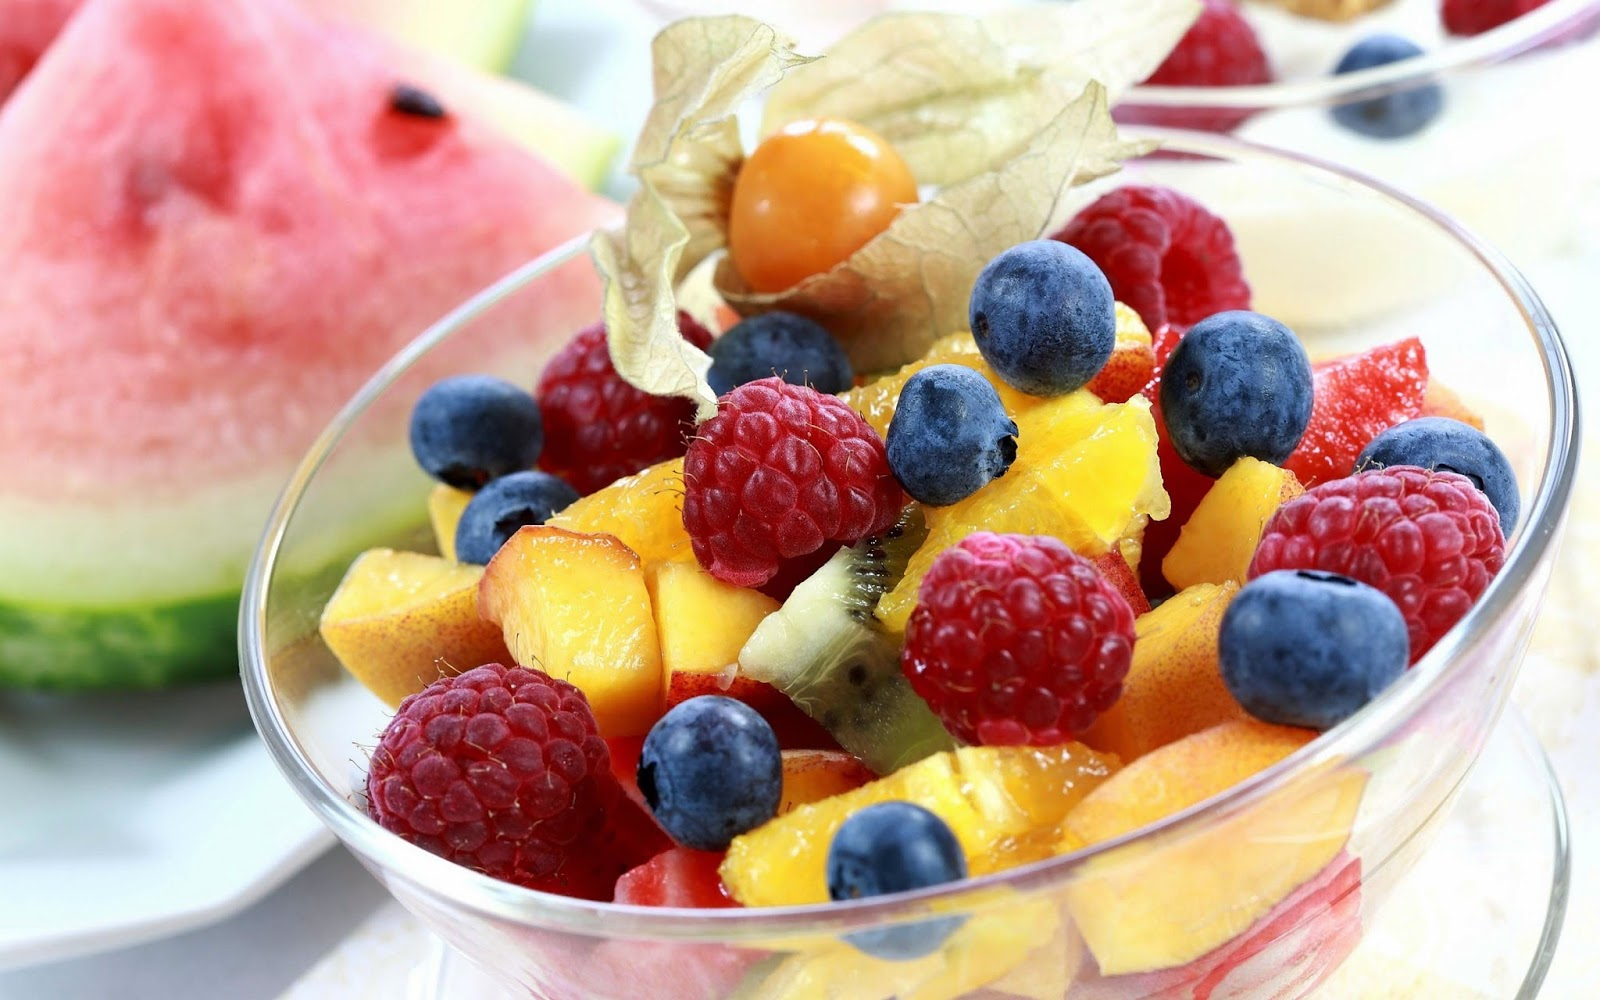 Fruits hd images - Fruits Salads Hd Images